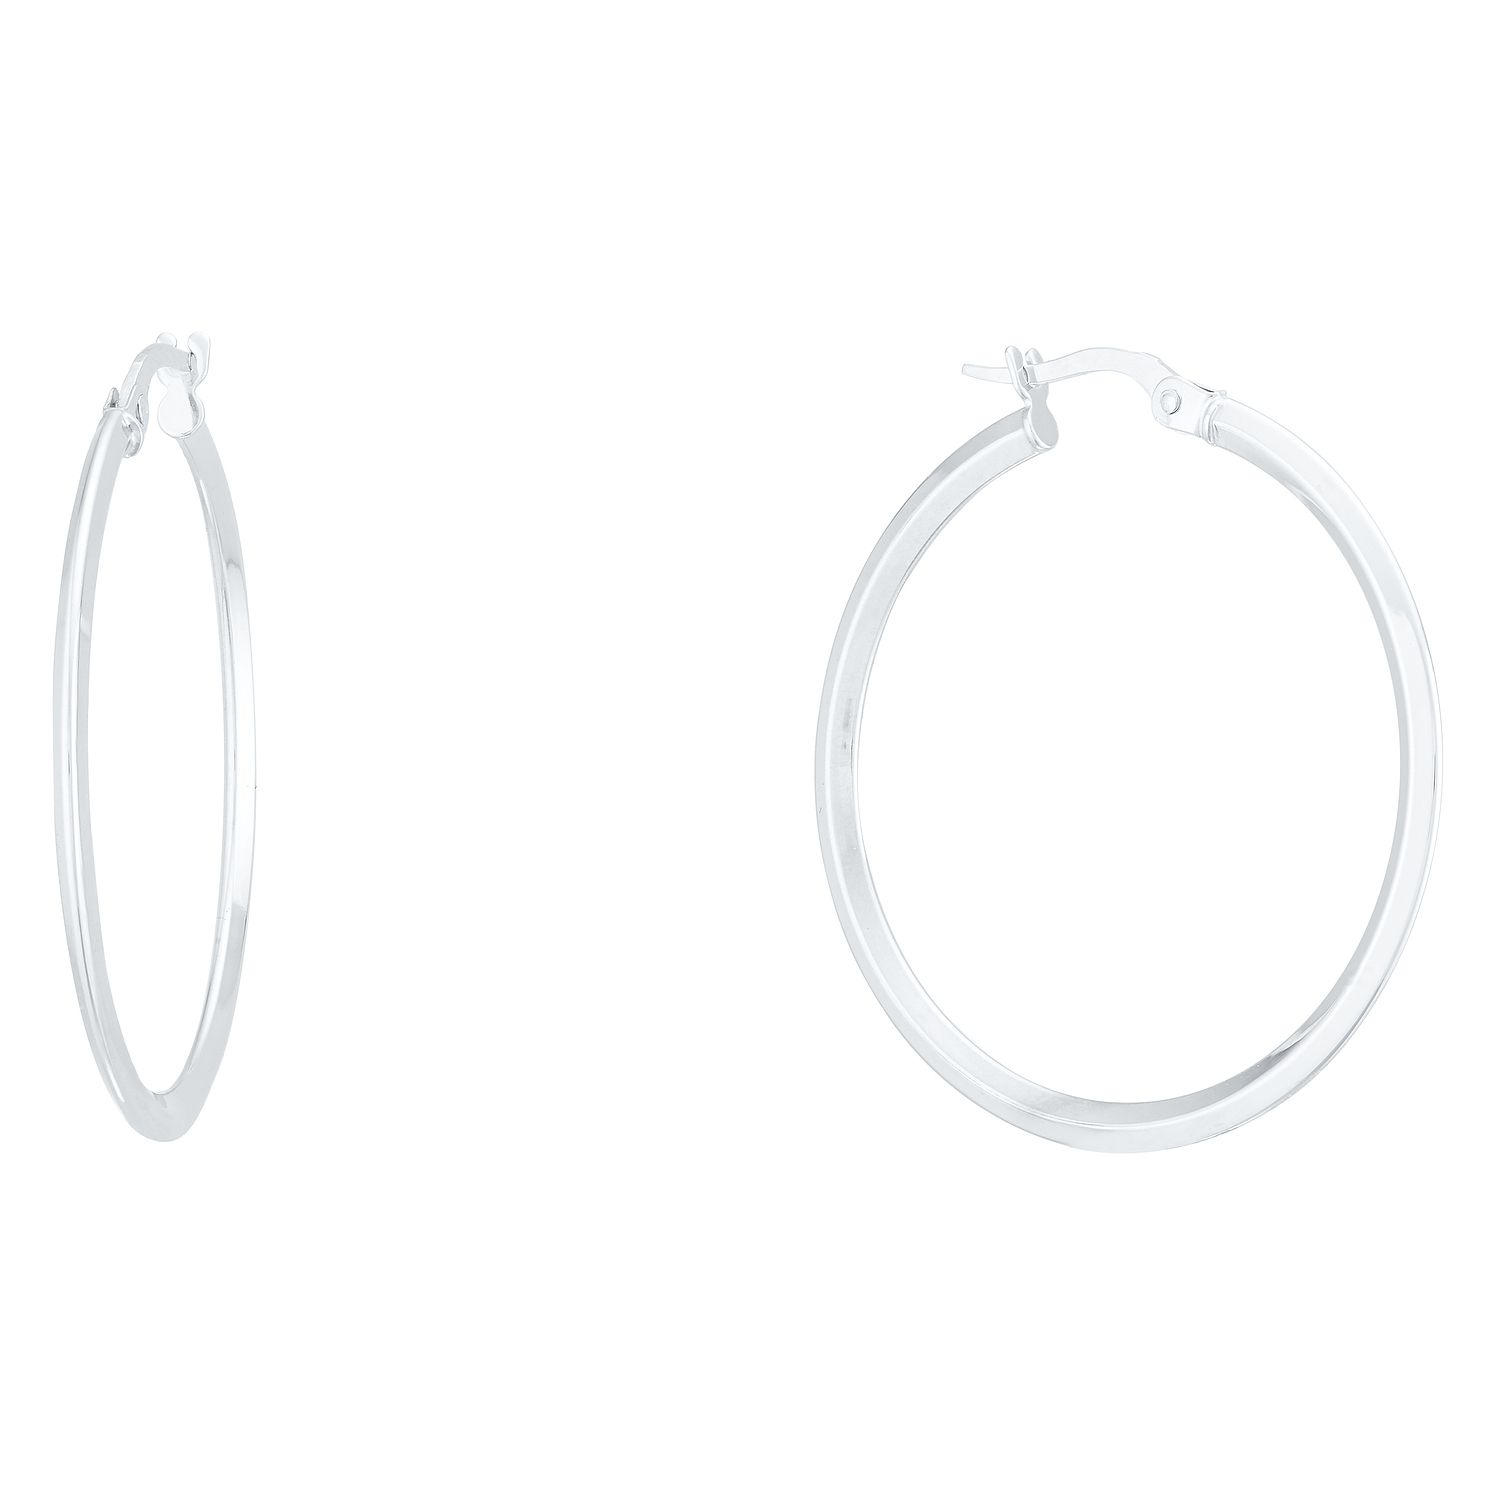 9ct White Gold 28mm Hoop Earrings - Product number 4056310